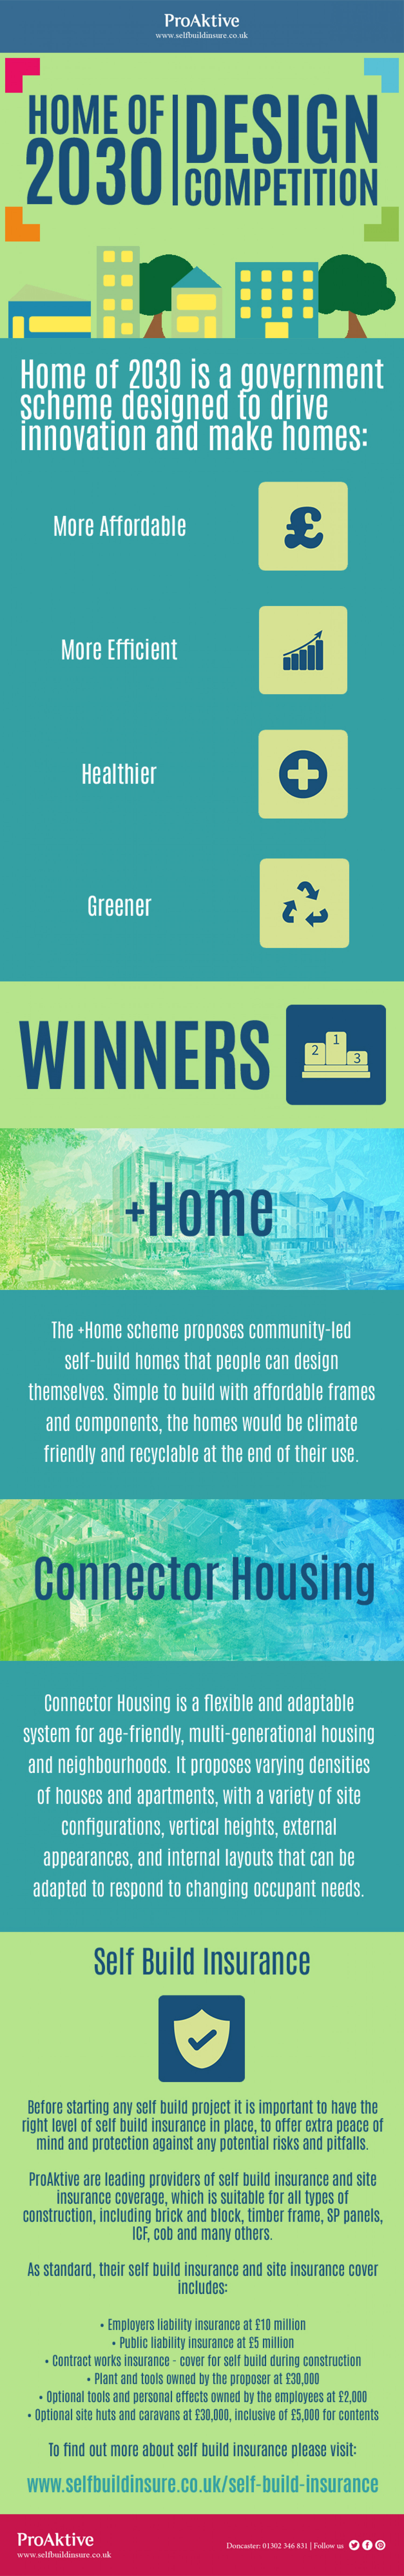 'Home of 2030' Design Competition Infographic